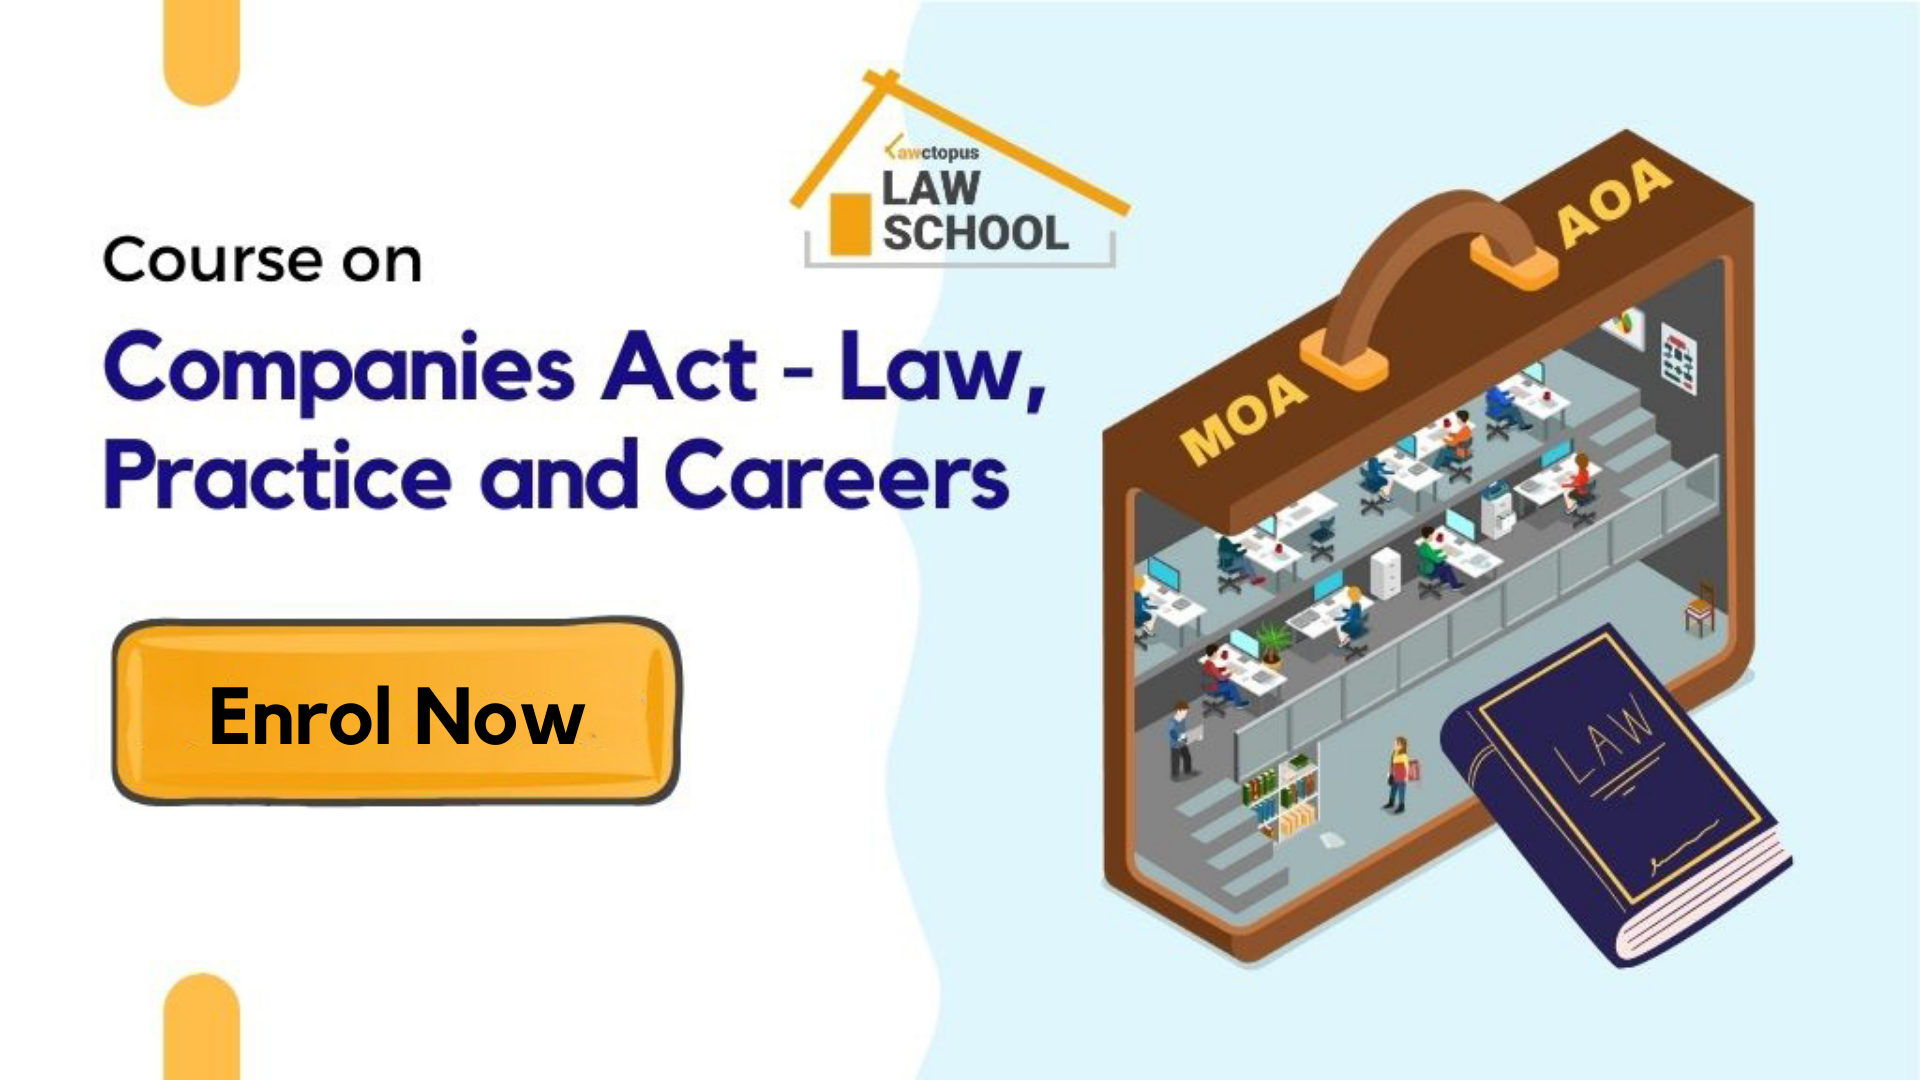 Course on Companies Law